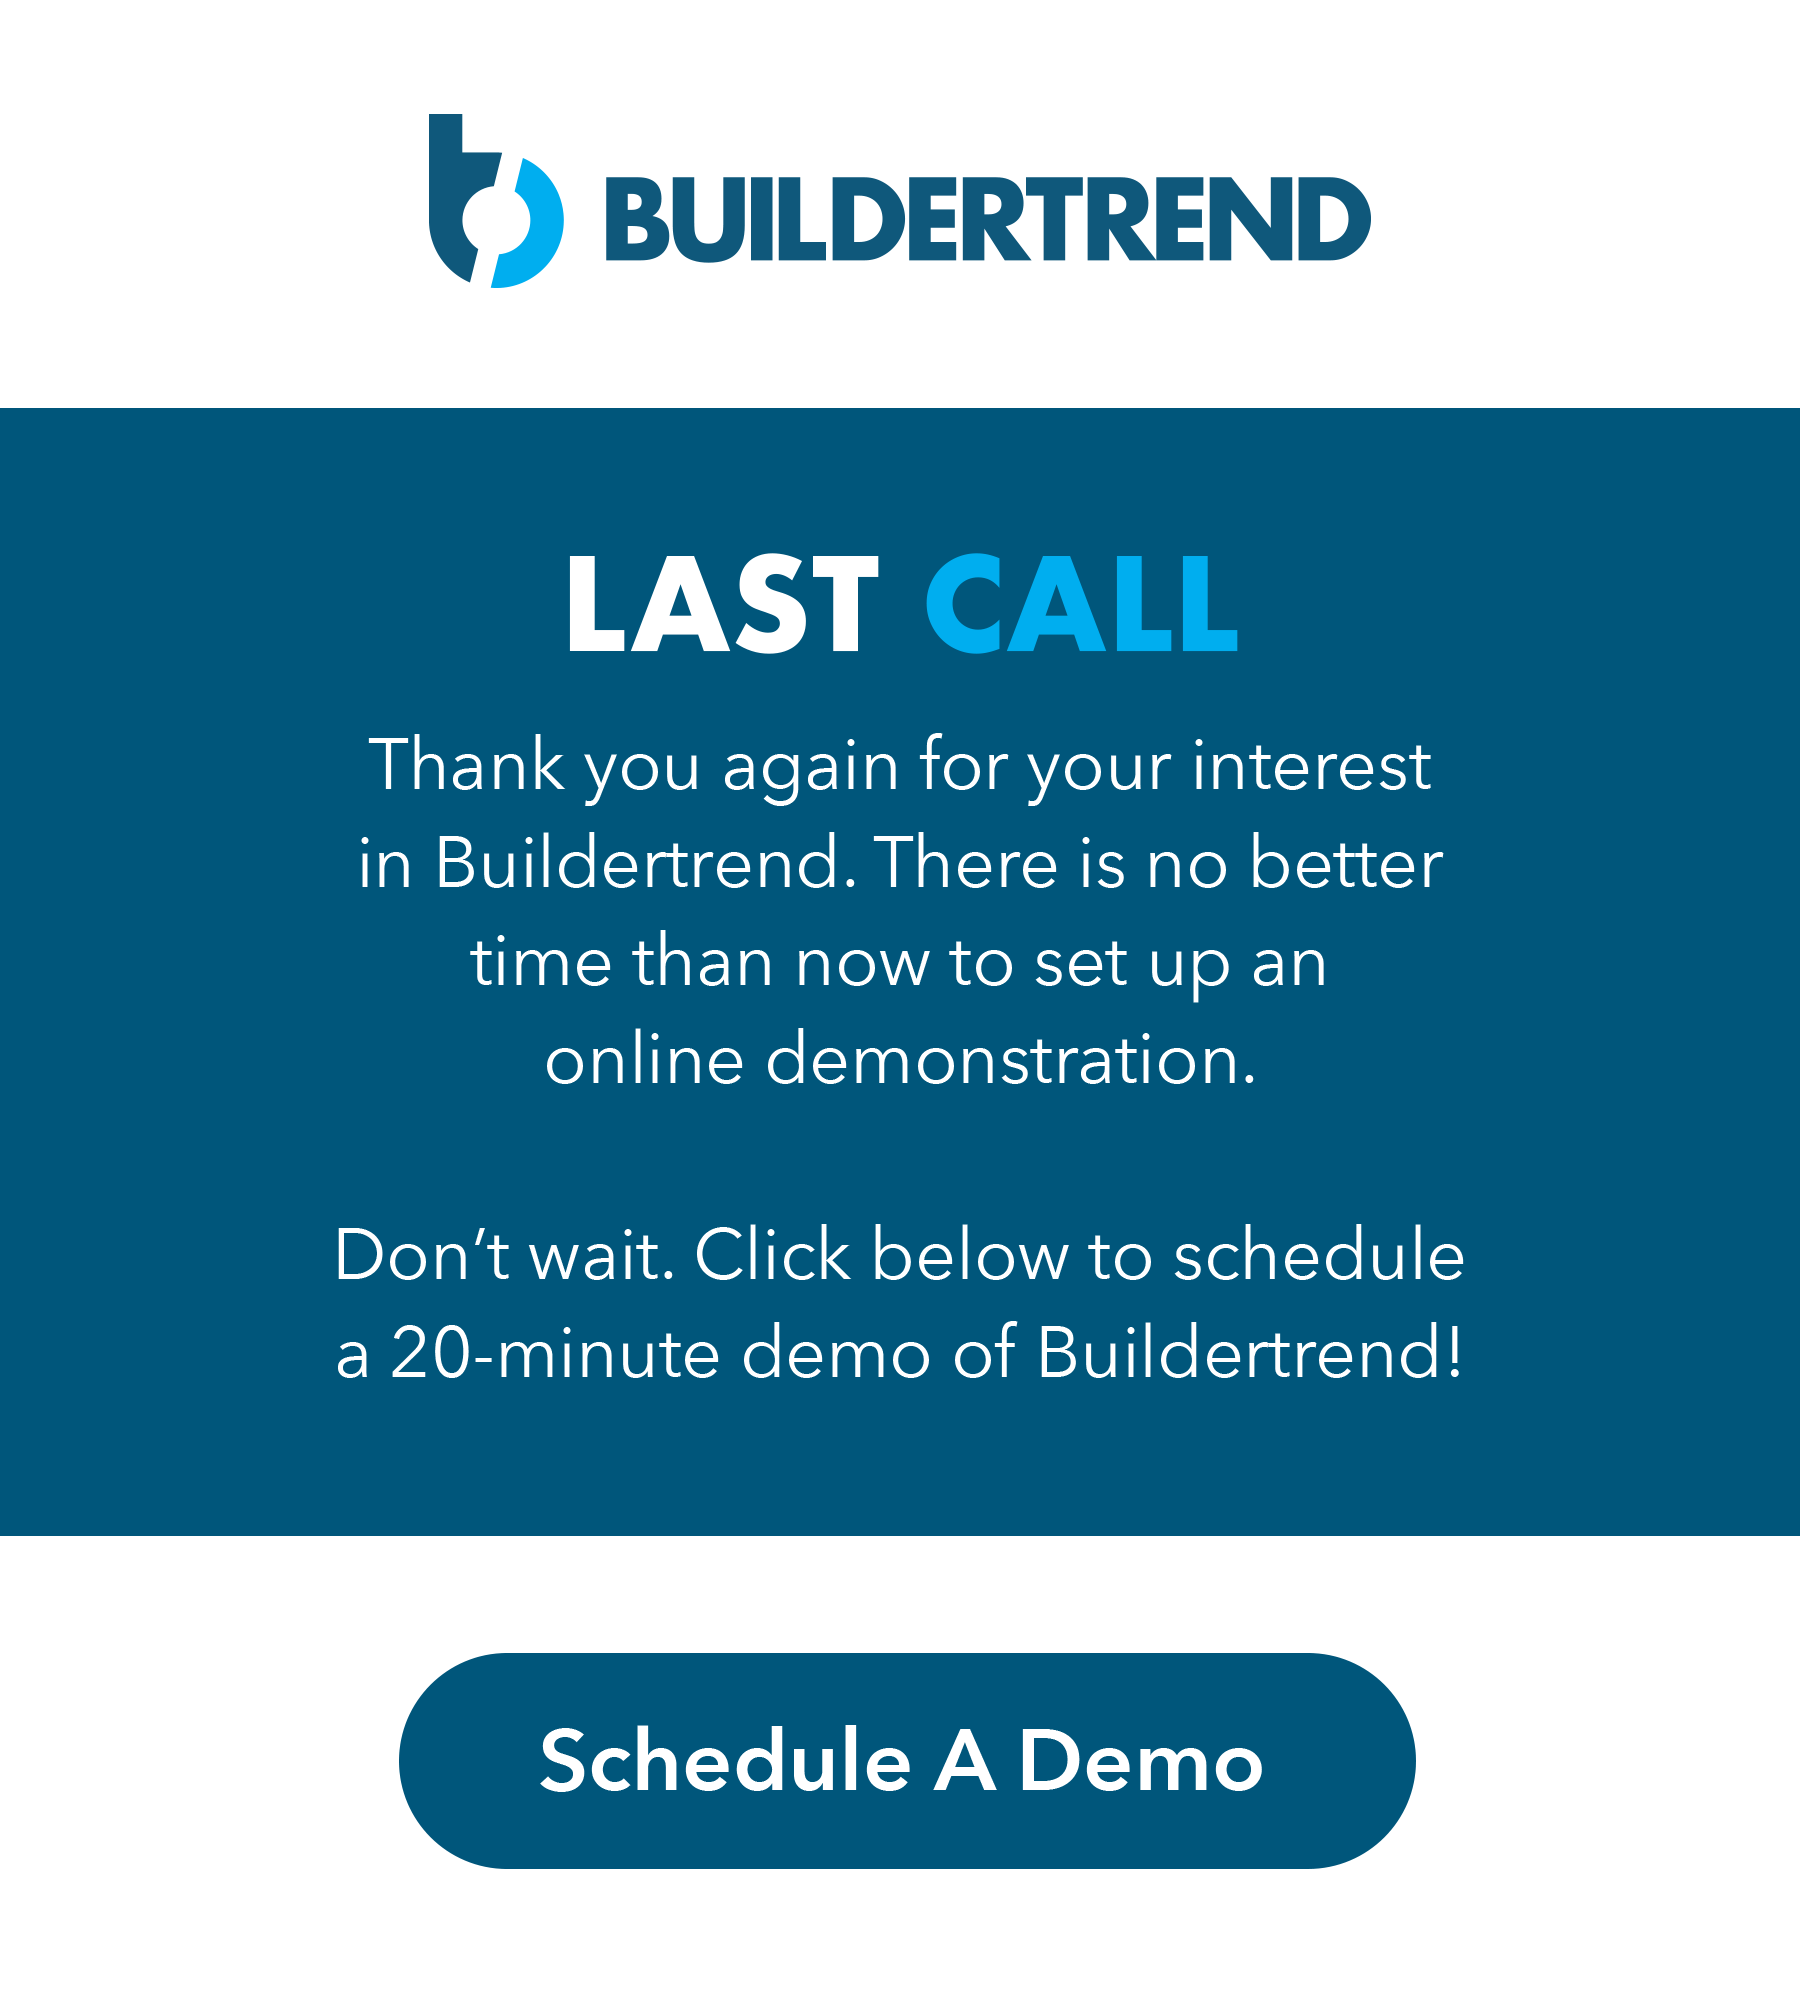 everything you need in one construction app - sign up now